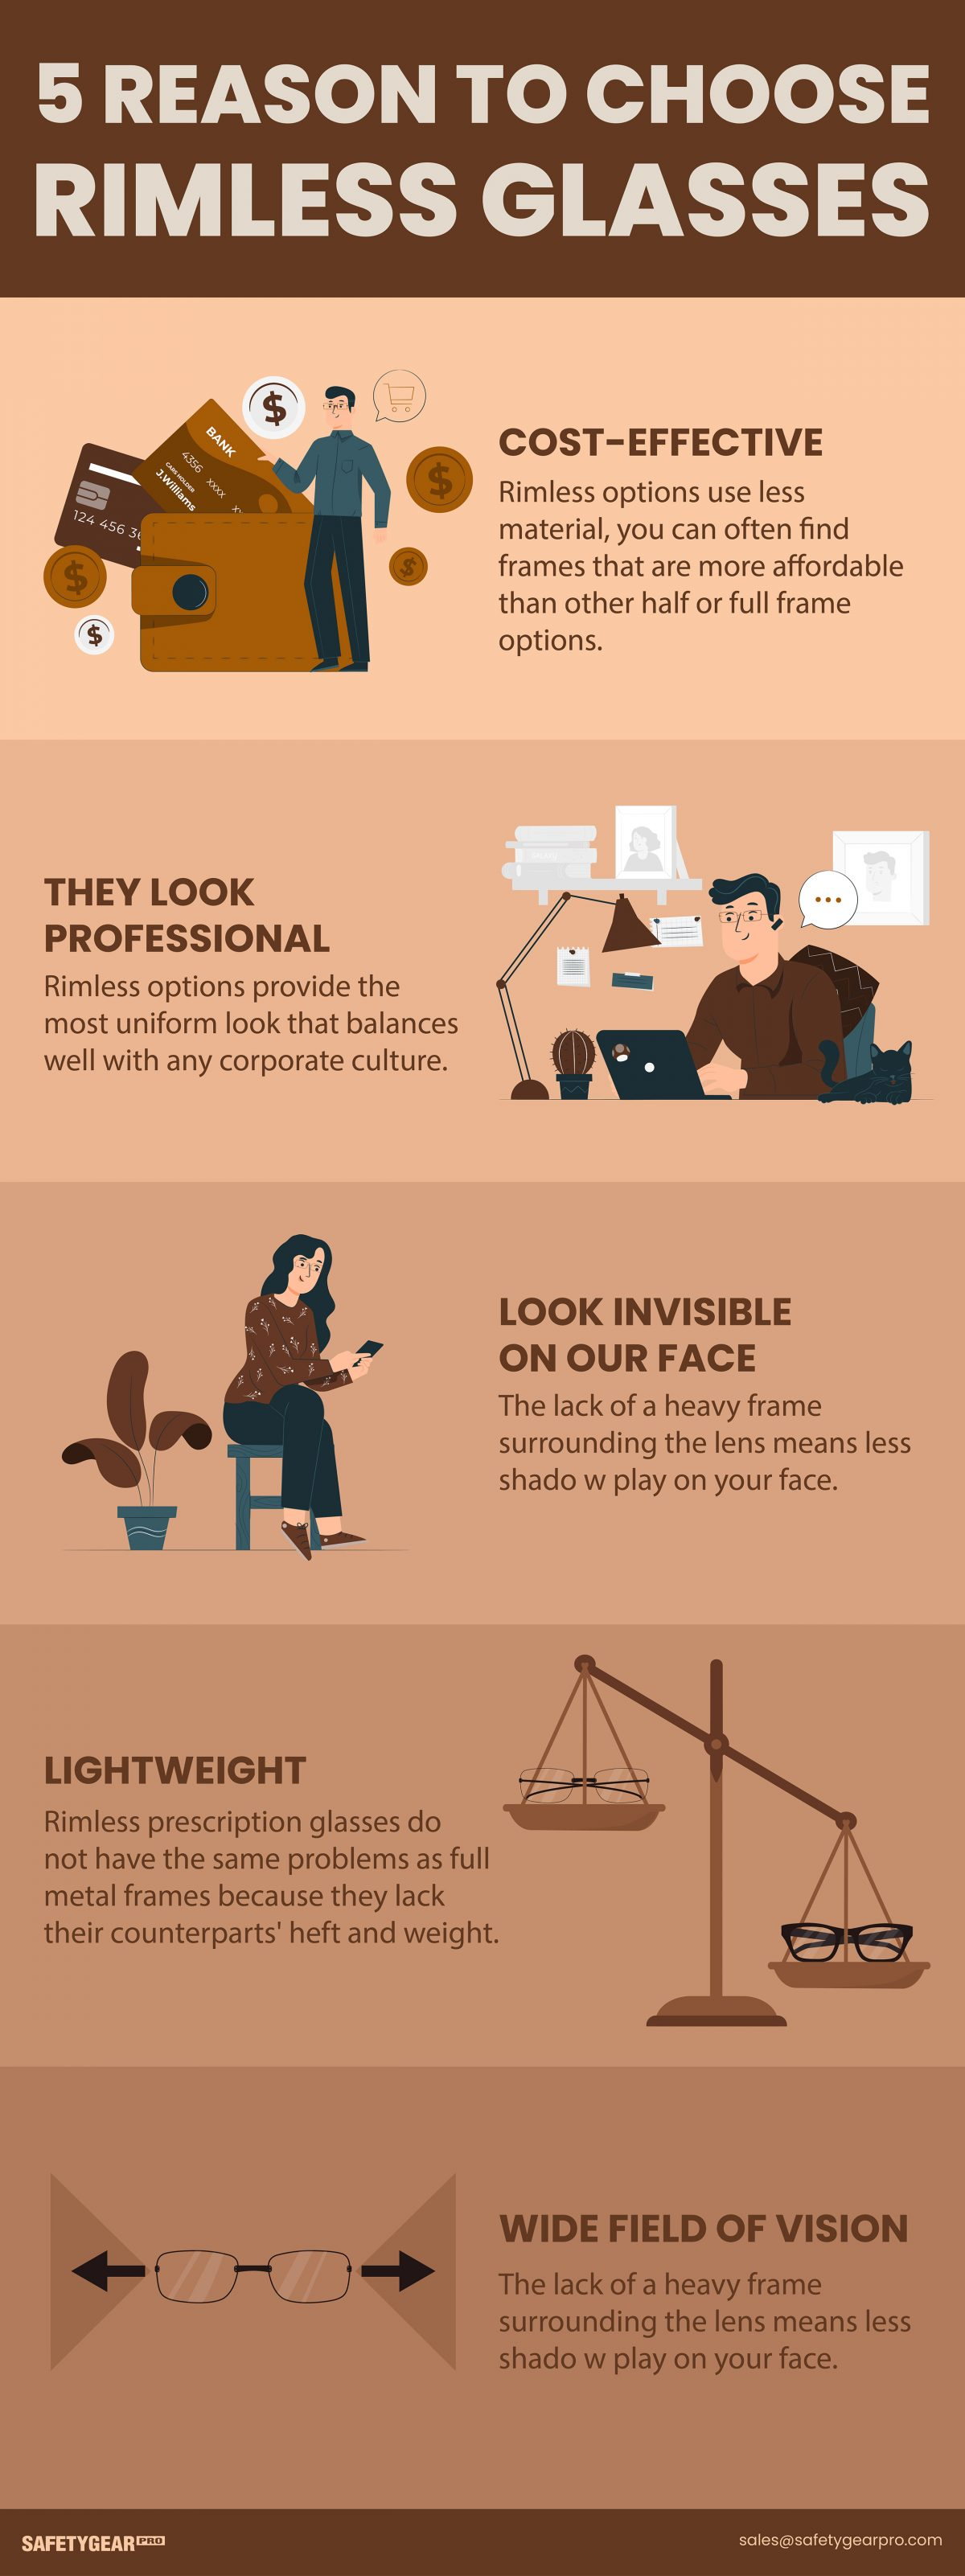 5 Reasons to Choose Rimless Glasses - Infographic